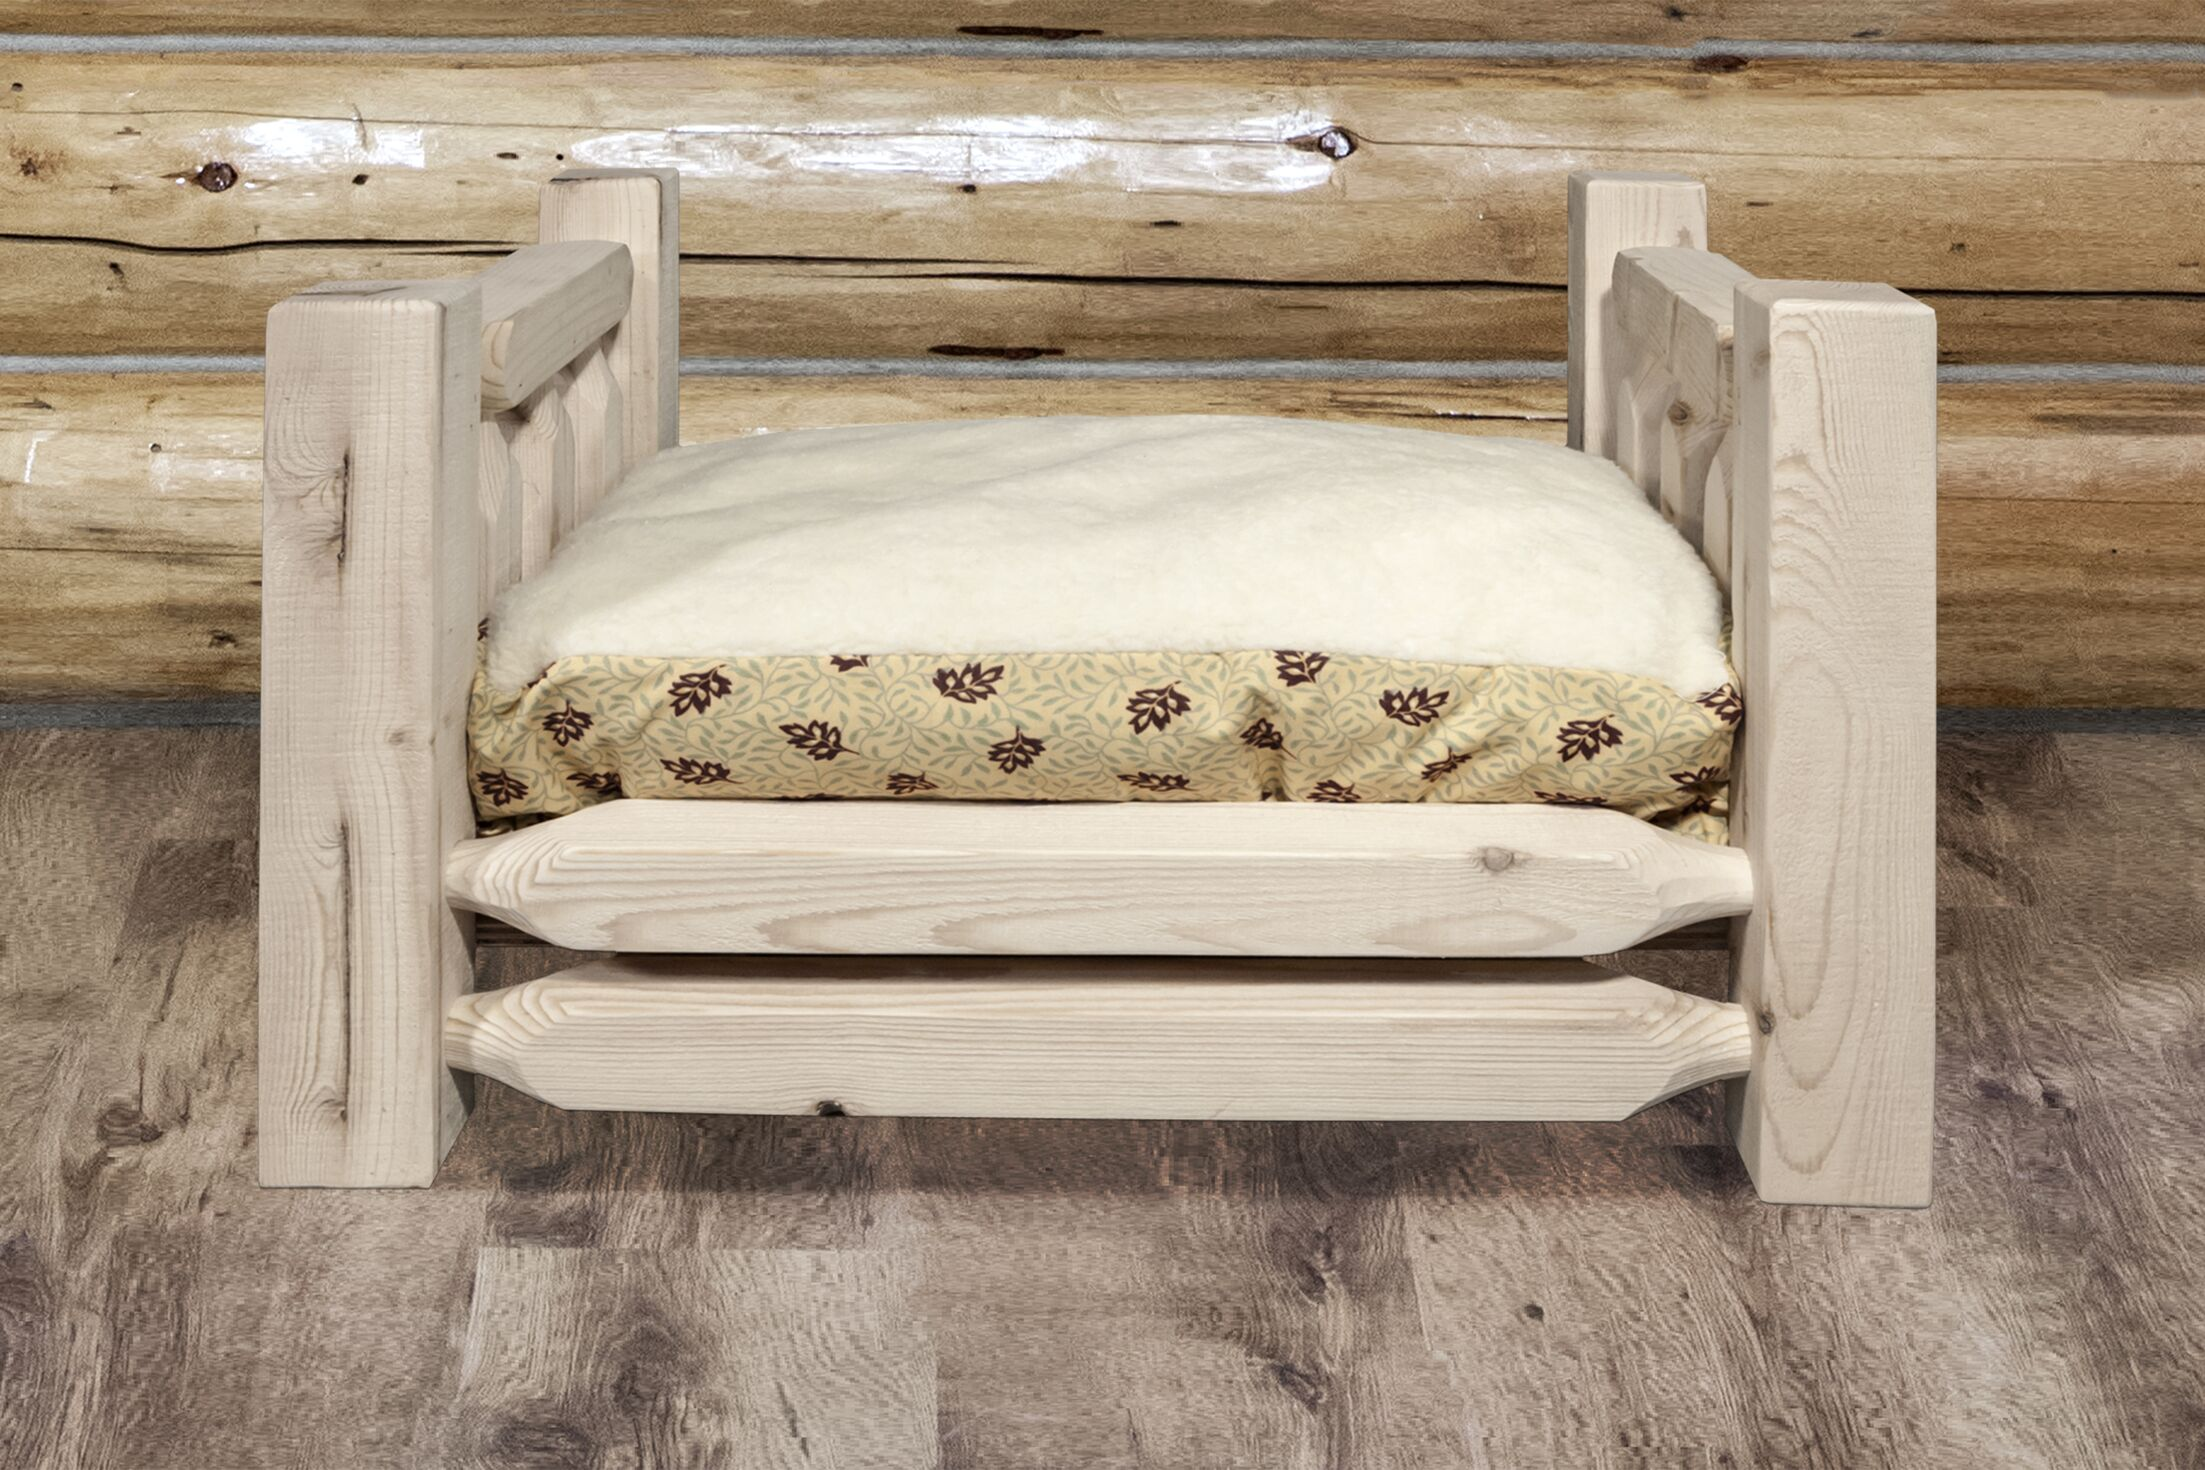 Katlyn Rustic Pet Bed with Mattress Size: 44 x 34 x 23, Finish: Stained and Lacquered